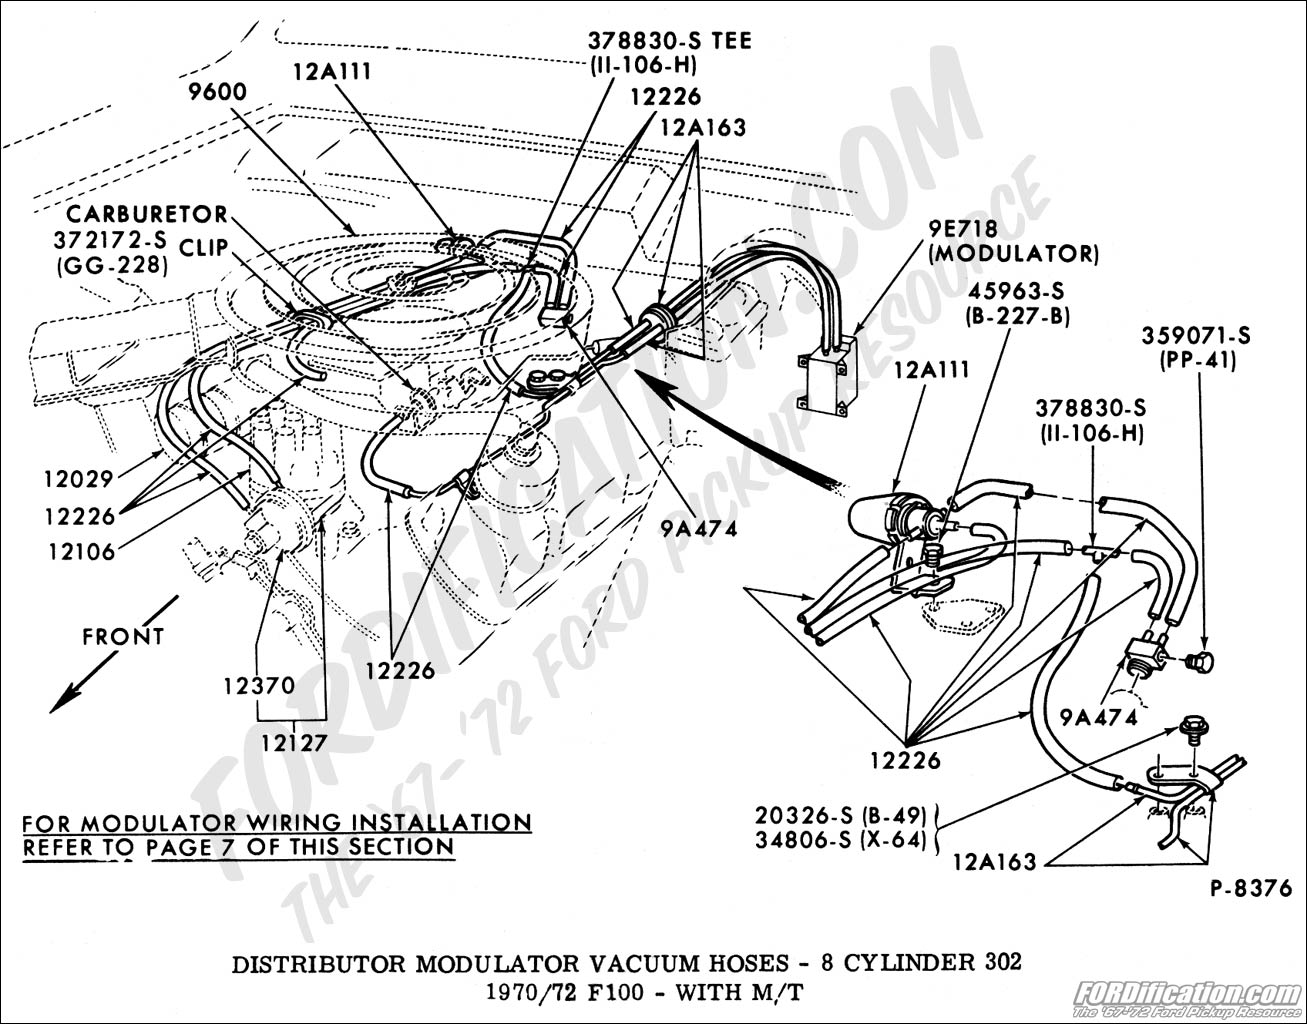 tbi wiring diagram chevy fuse box diagram wiring diagrams online Chevy Starter Solenoid Wiring Diagram tbi ignition coil wiring diagram tbi discover your wiring 1991 chevy 350 pickup coil location 89